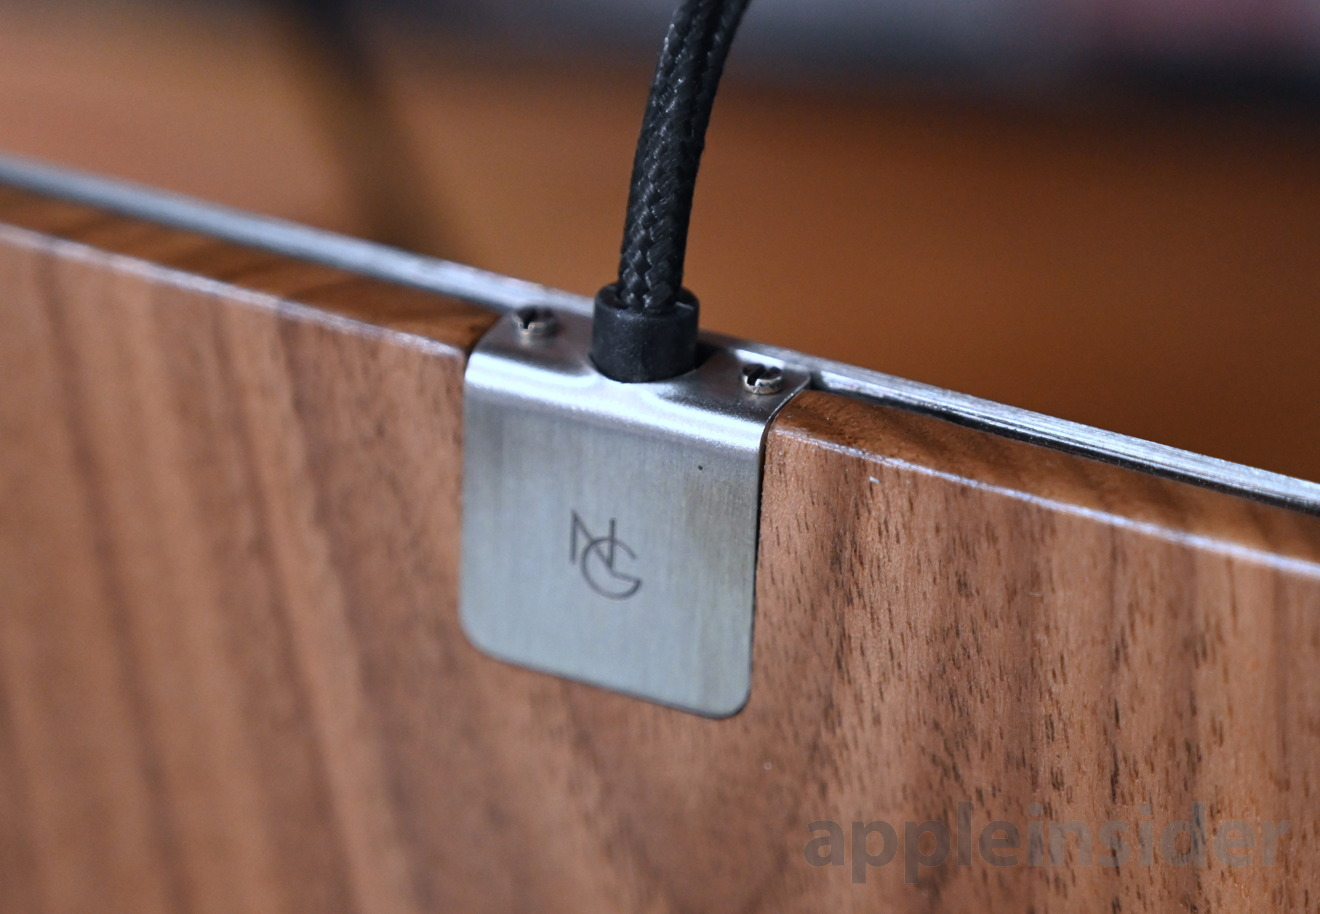 Noah and Grey wireless charger's cable is well secured